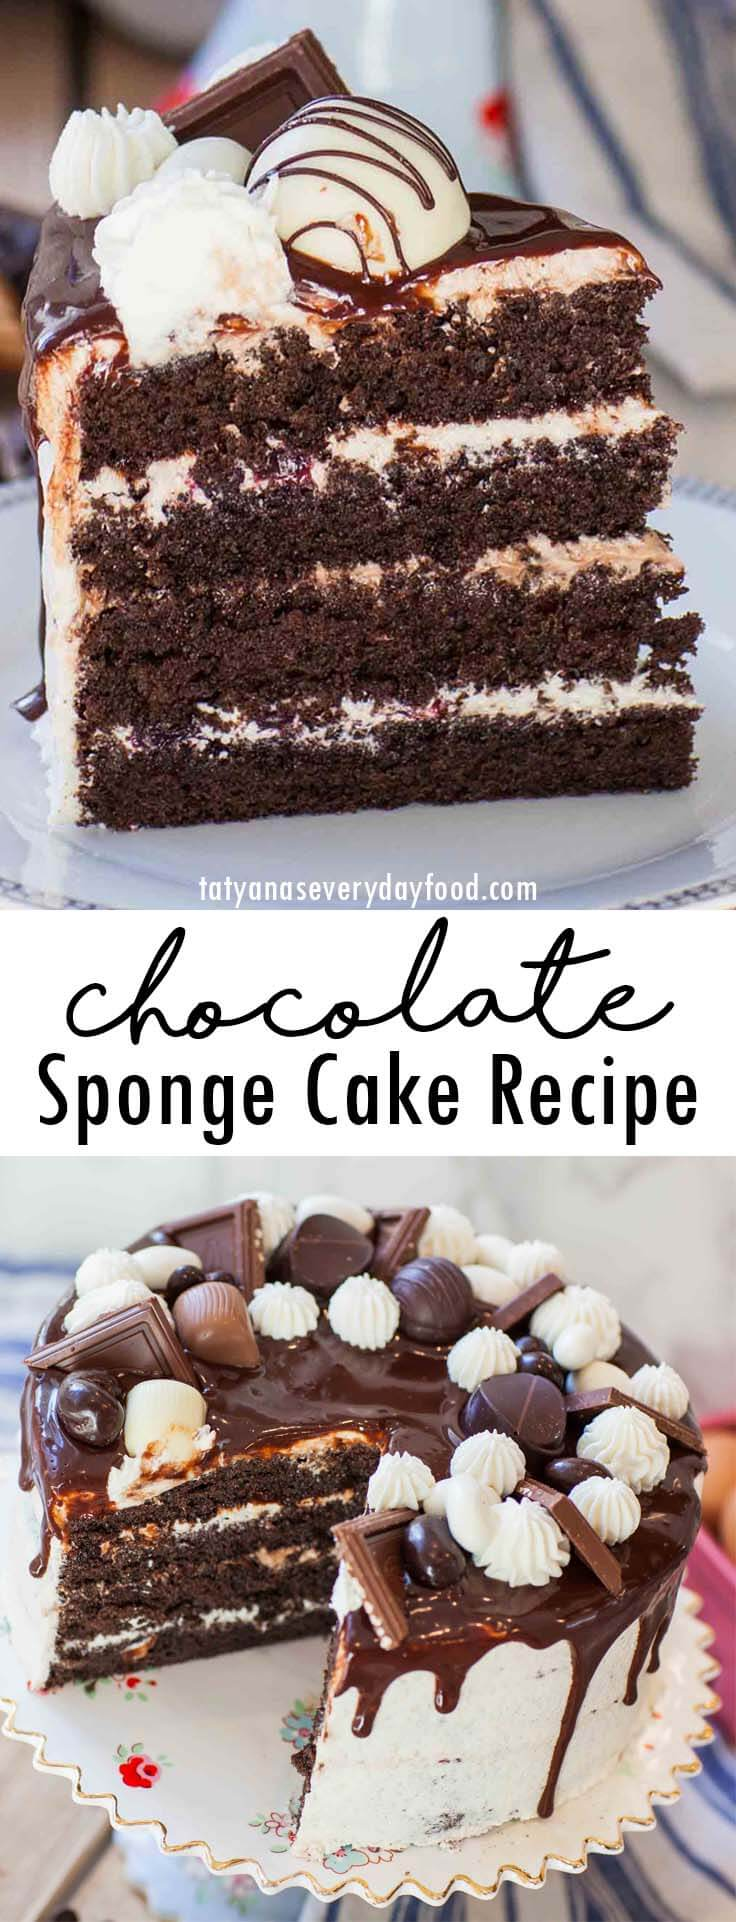 Chocolate Sponge Cake video recipe